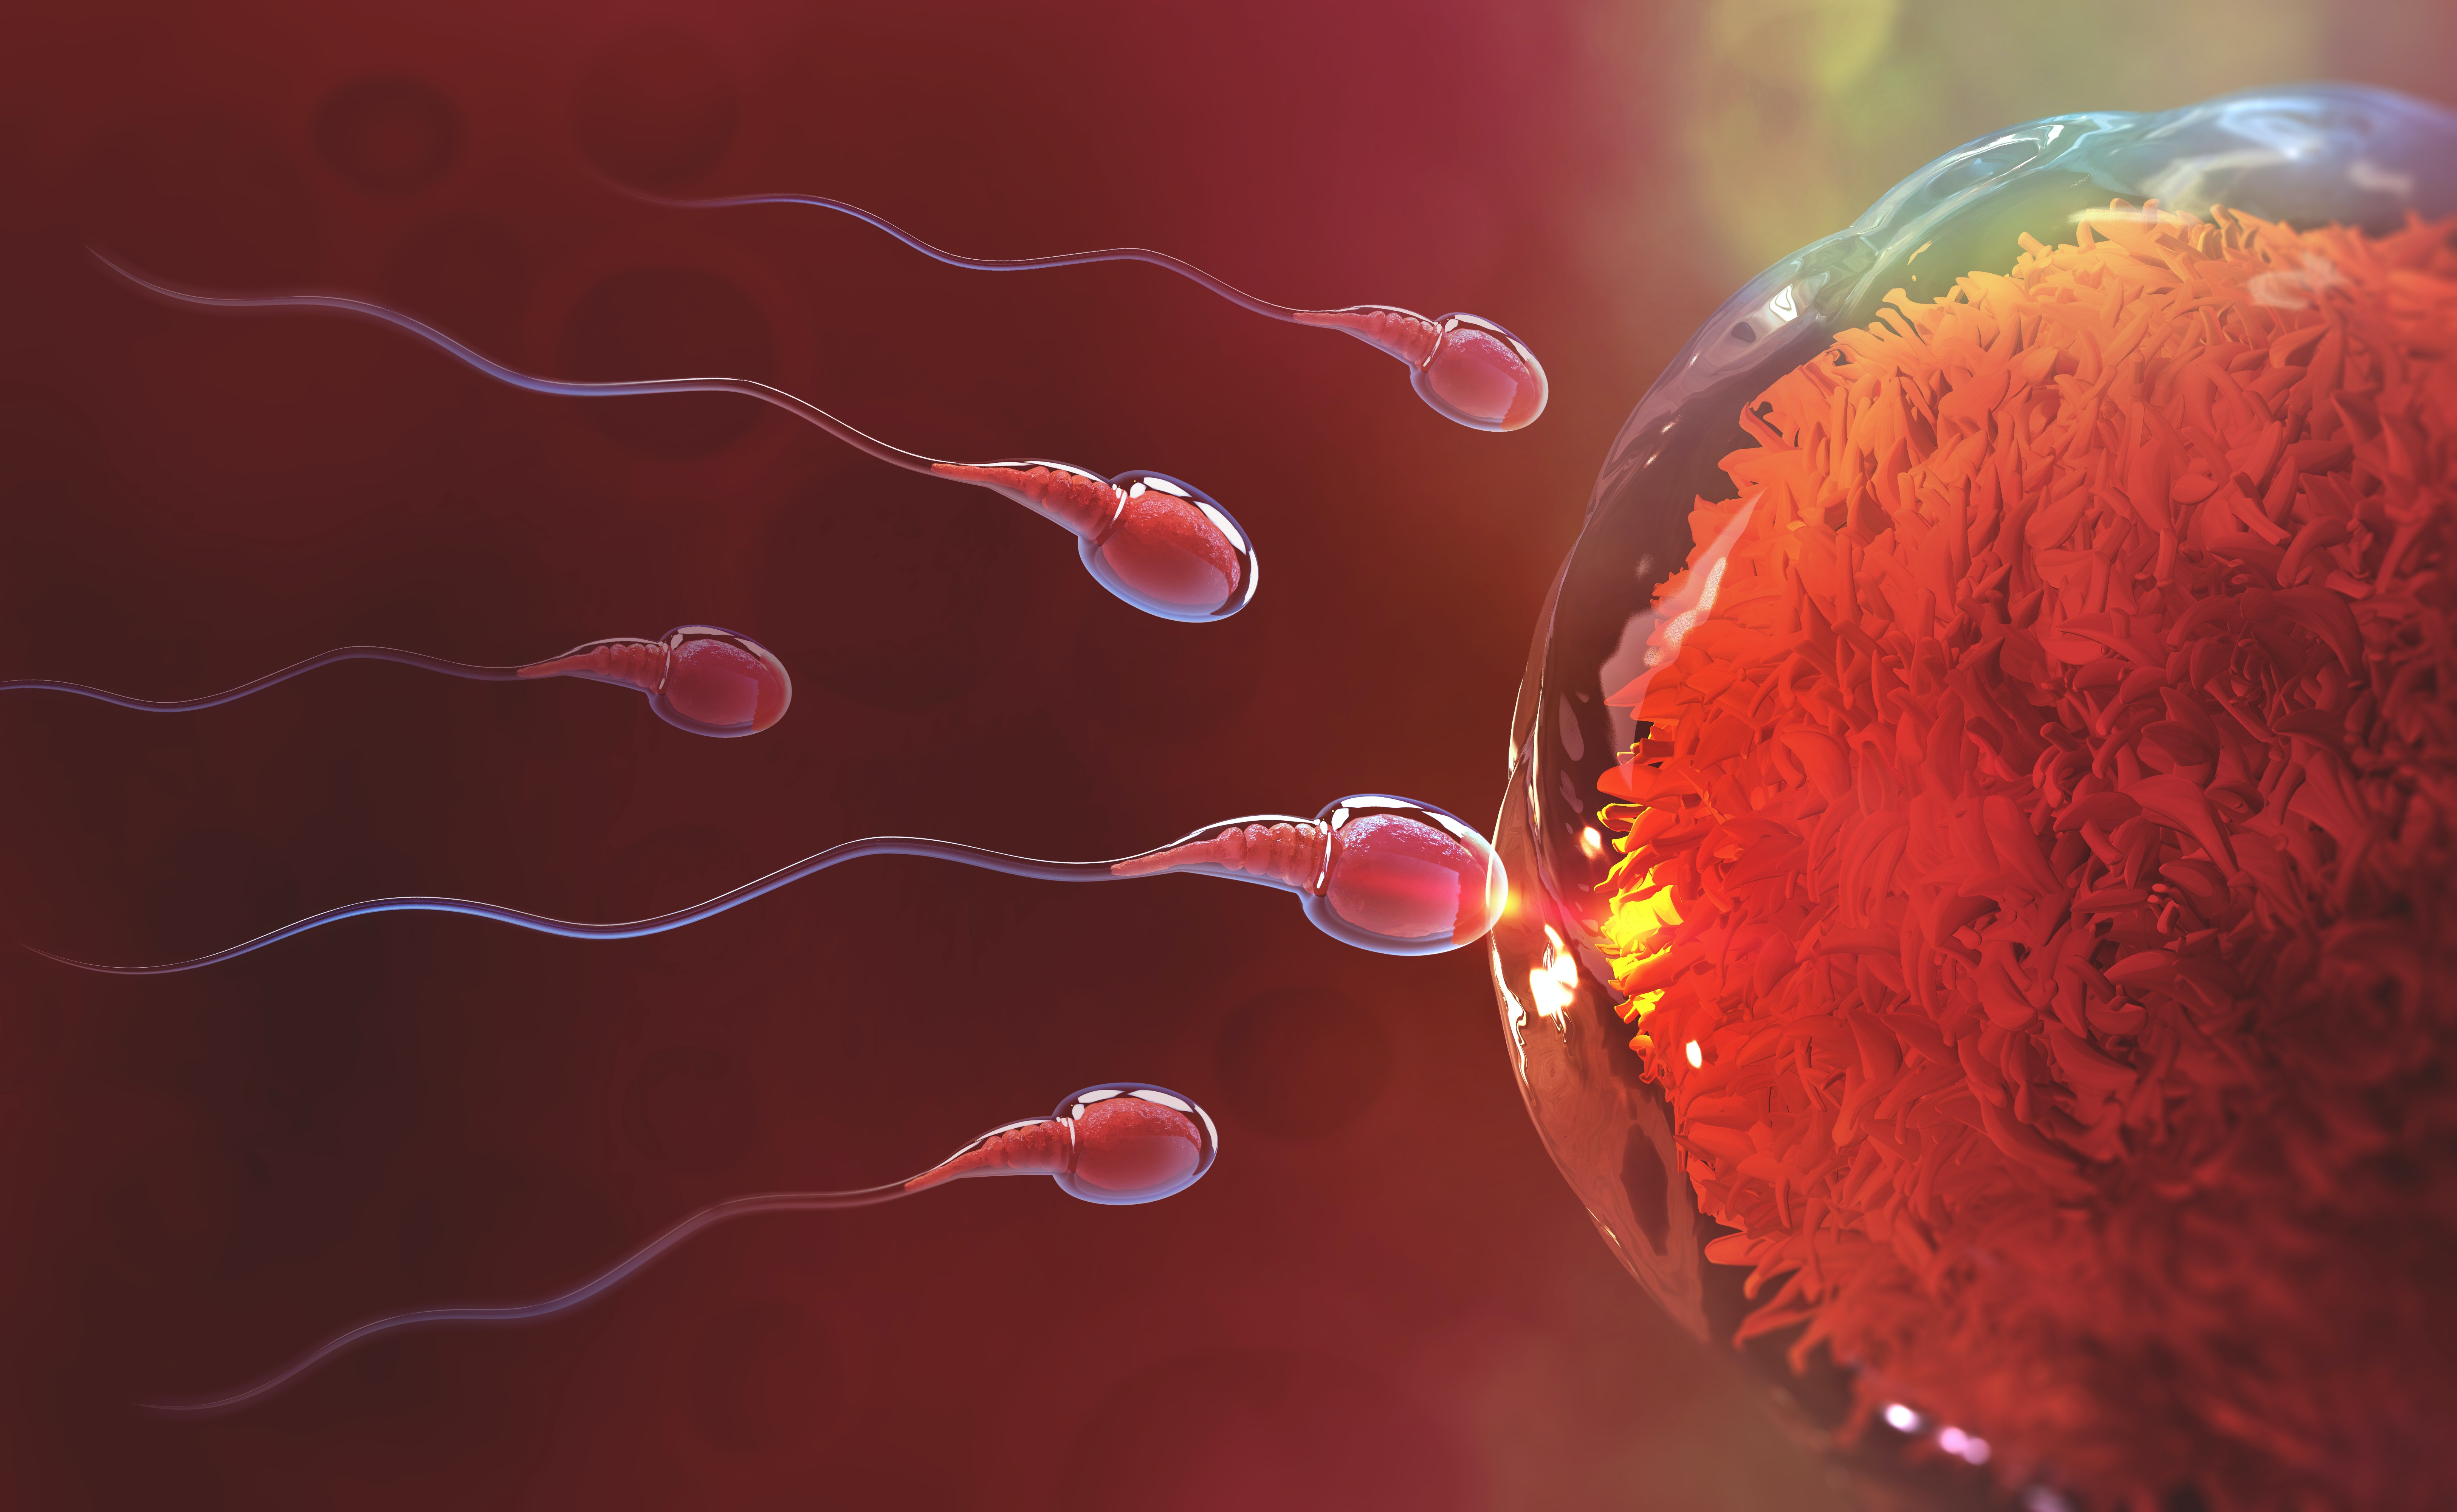 Life of sperm outside the body